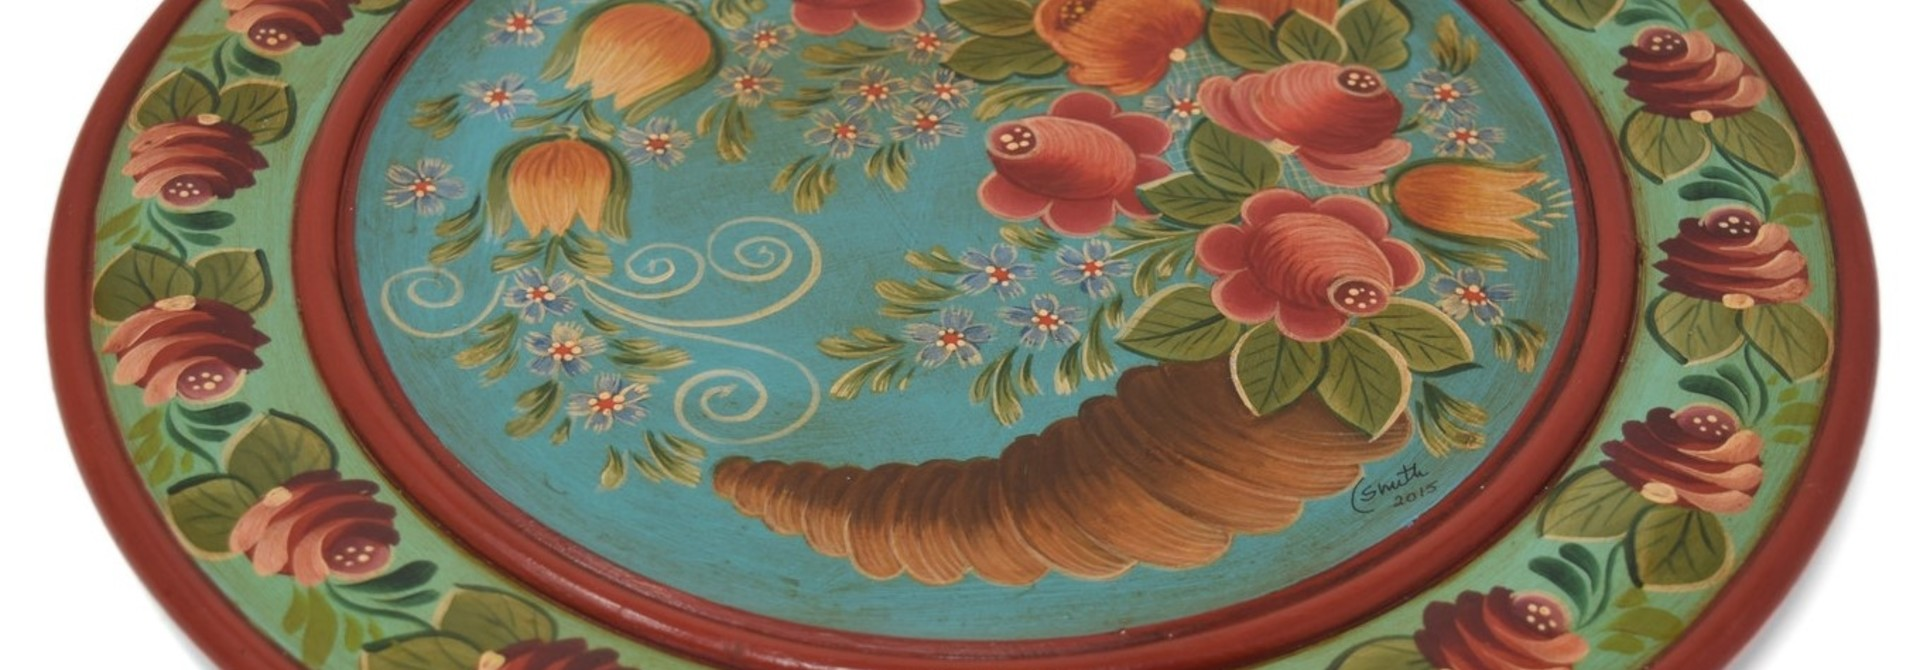 Wooden Plate with Horn of Plenty, Turquoise/Light Green